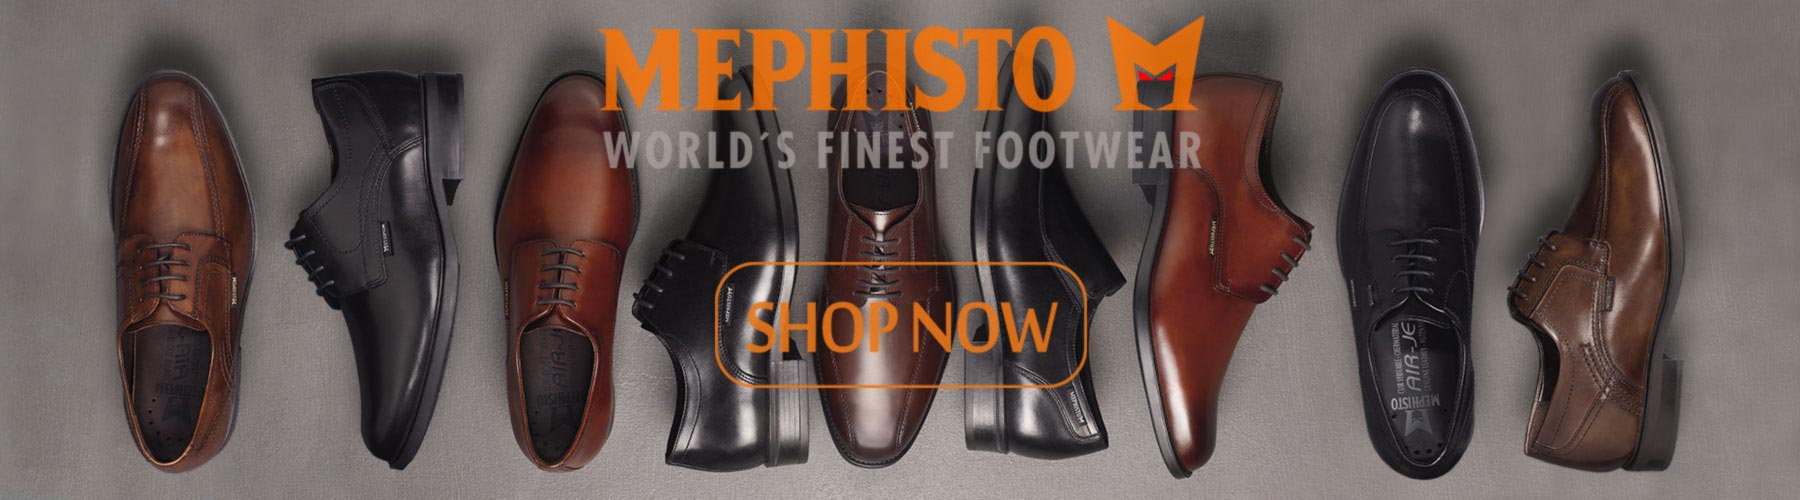 shop now mephisto online shoes